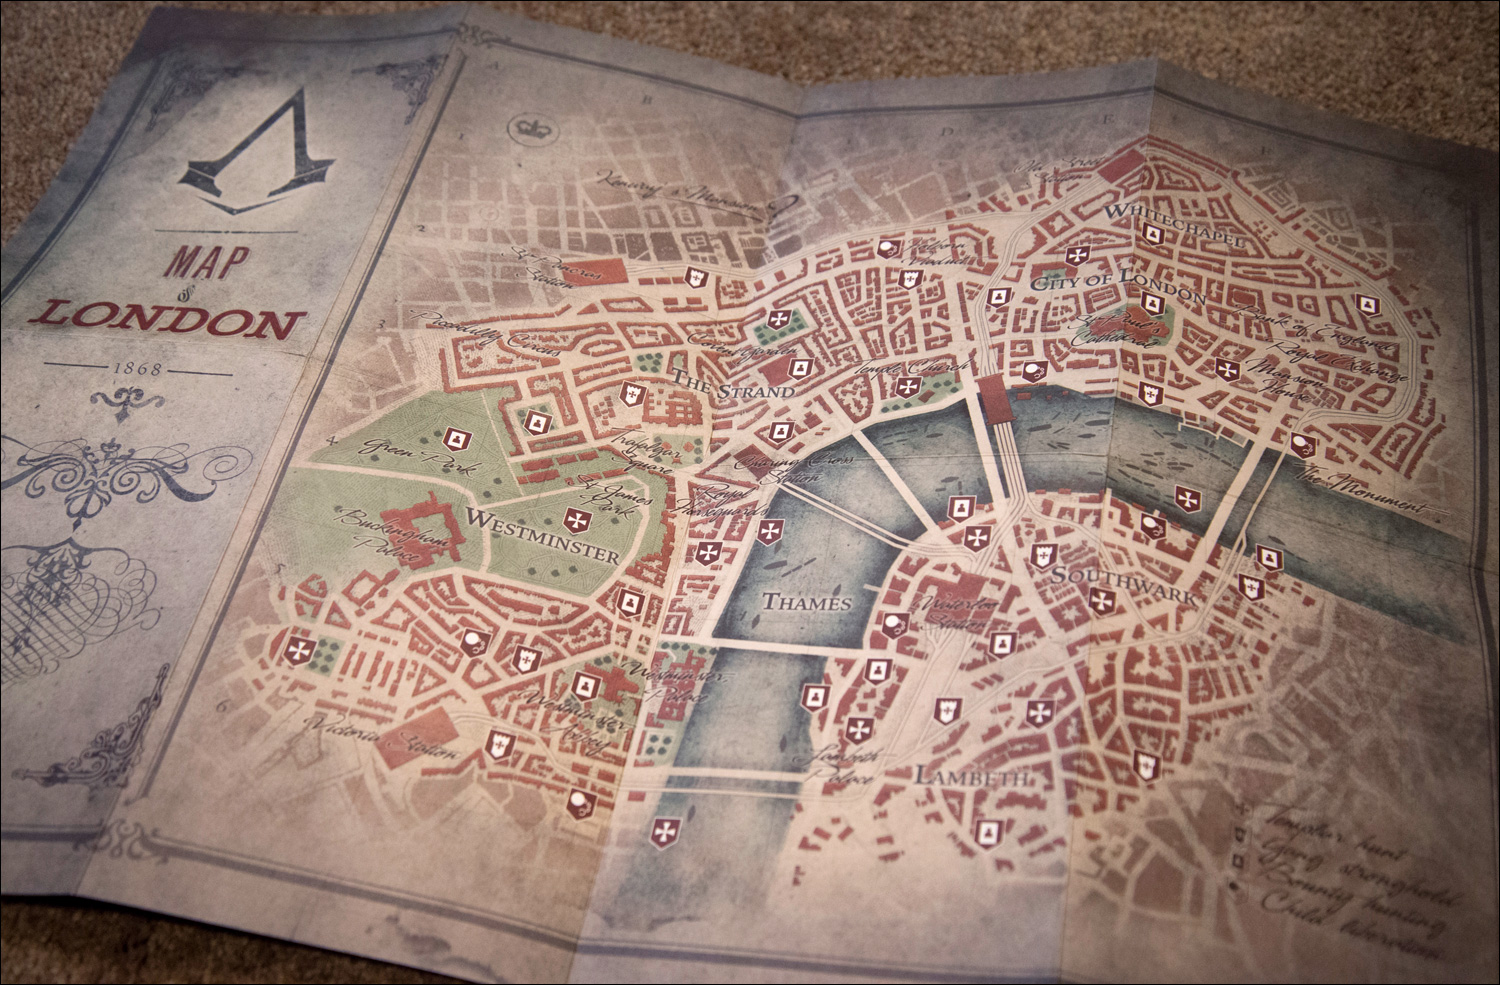 Assassins-Creed-Syndicate-Rooks-Edition-Map-of-London